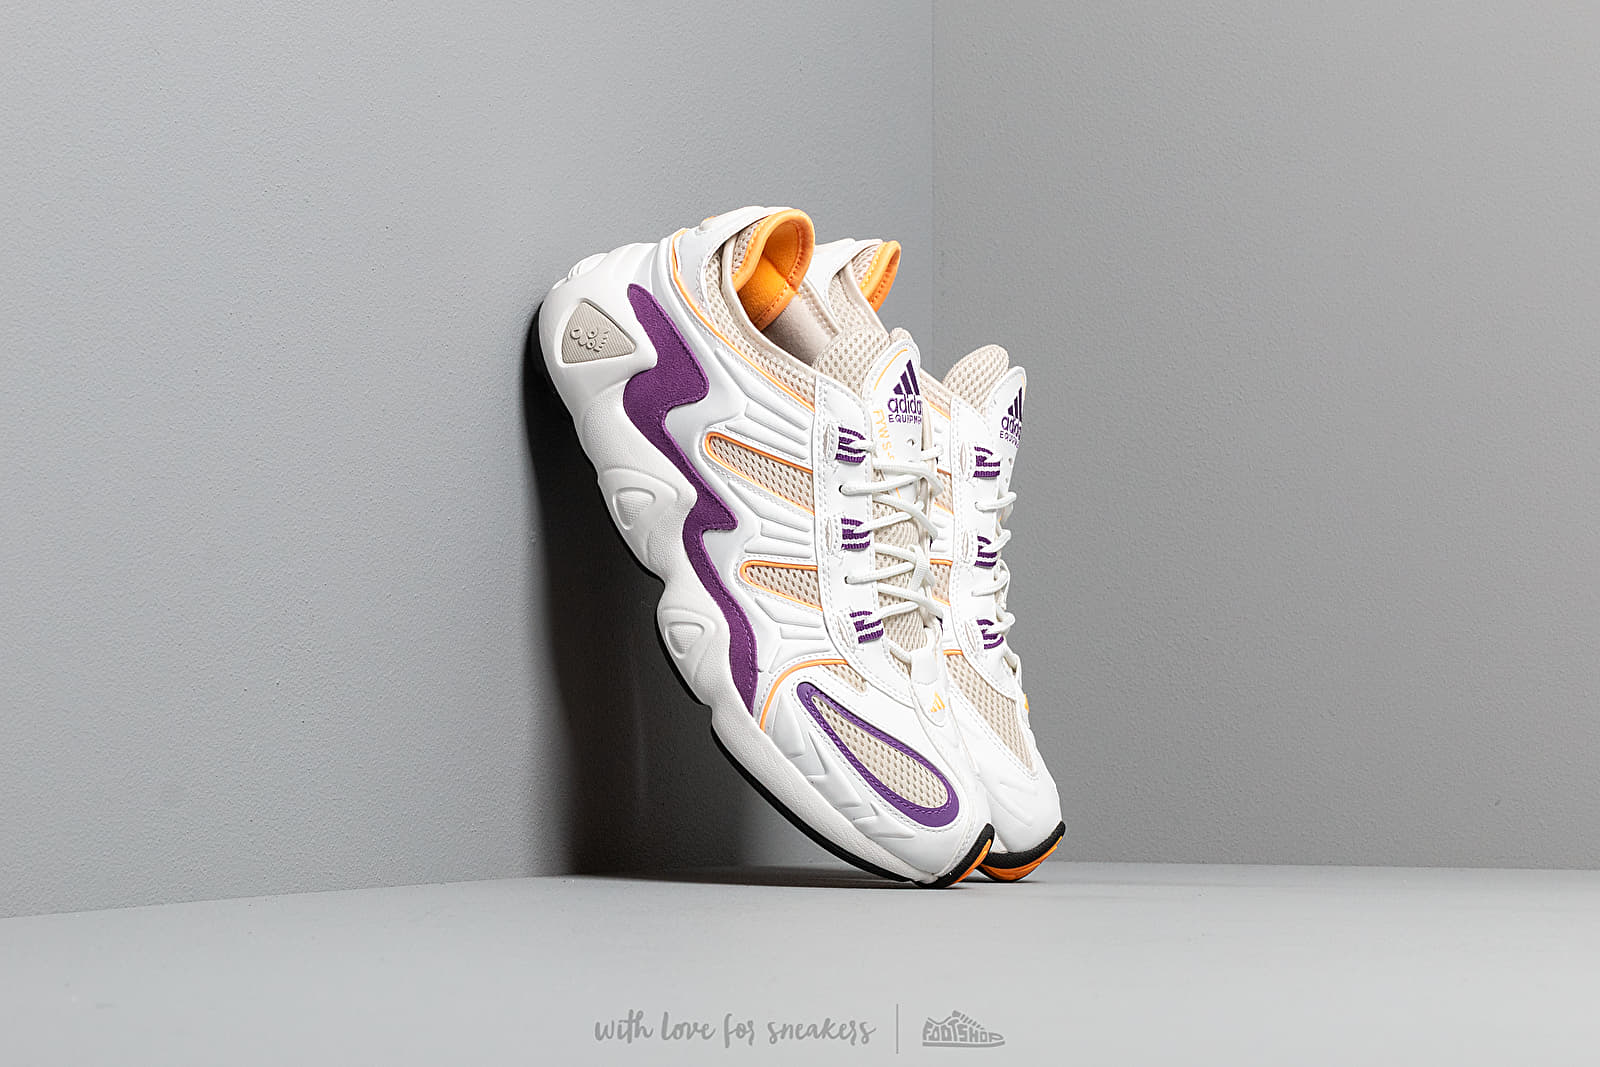 adidas FYW S-97 Crystal White/ Crystal White/ Flace Orange at a great price 136 € buy at Footshop